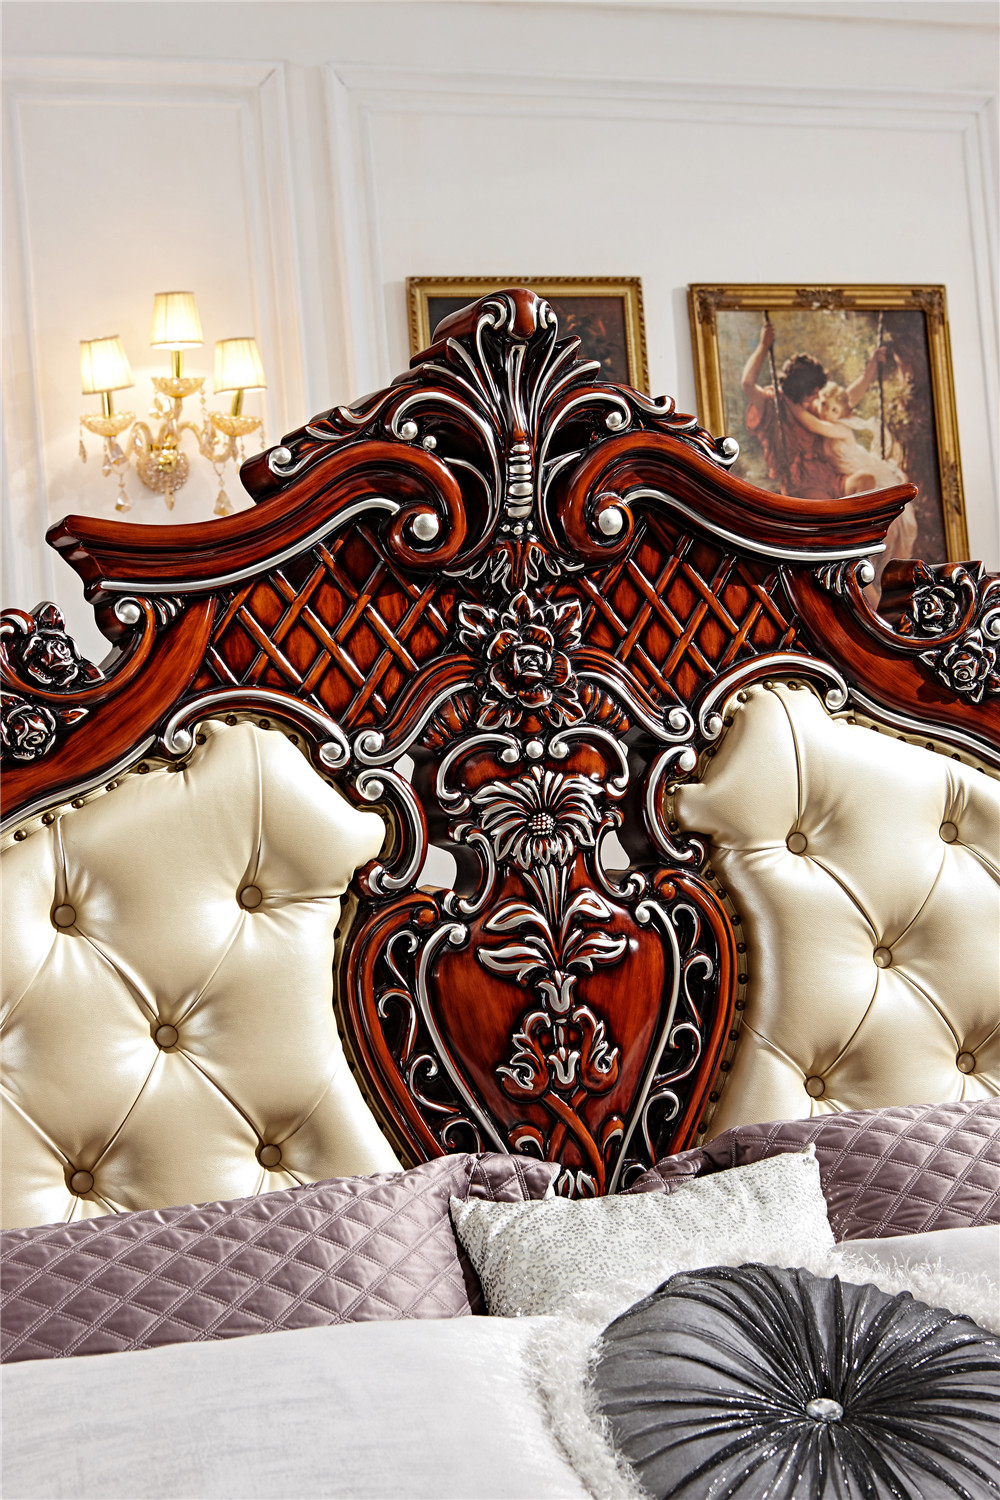 Wooden box bed designs pictures - European Double Bed Design Wooden Box Bed 0409 F102 In Beds From Furniture On Aliexpress Com Alibaba Group